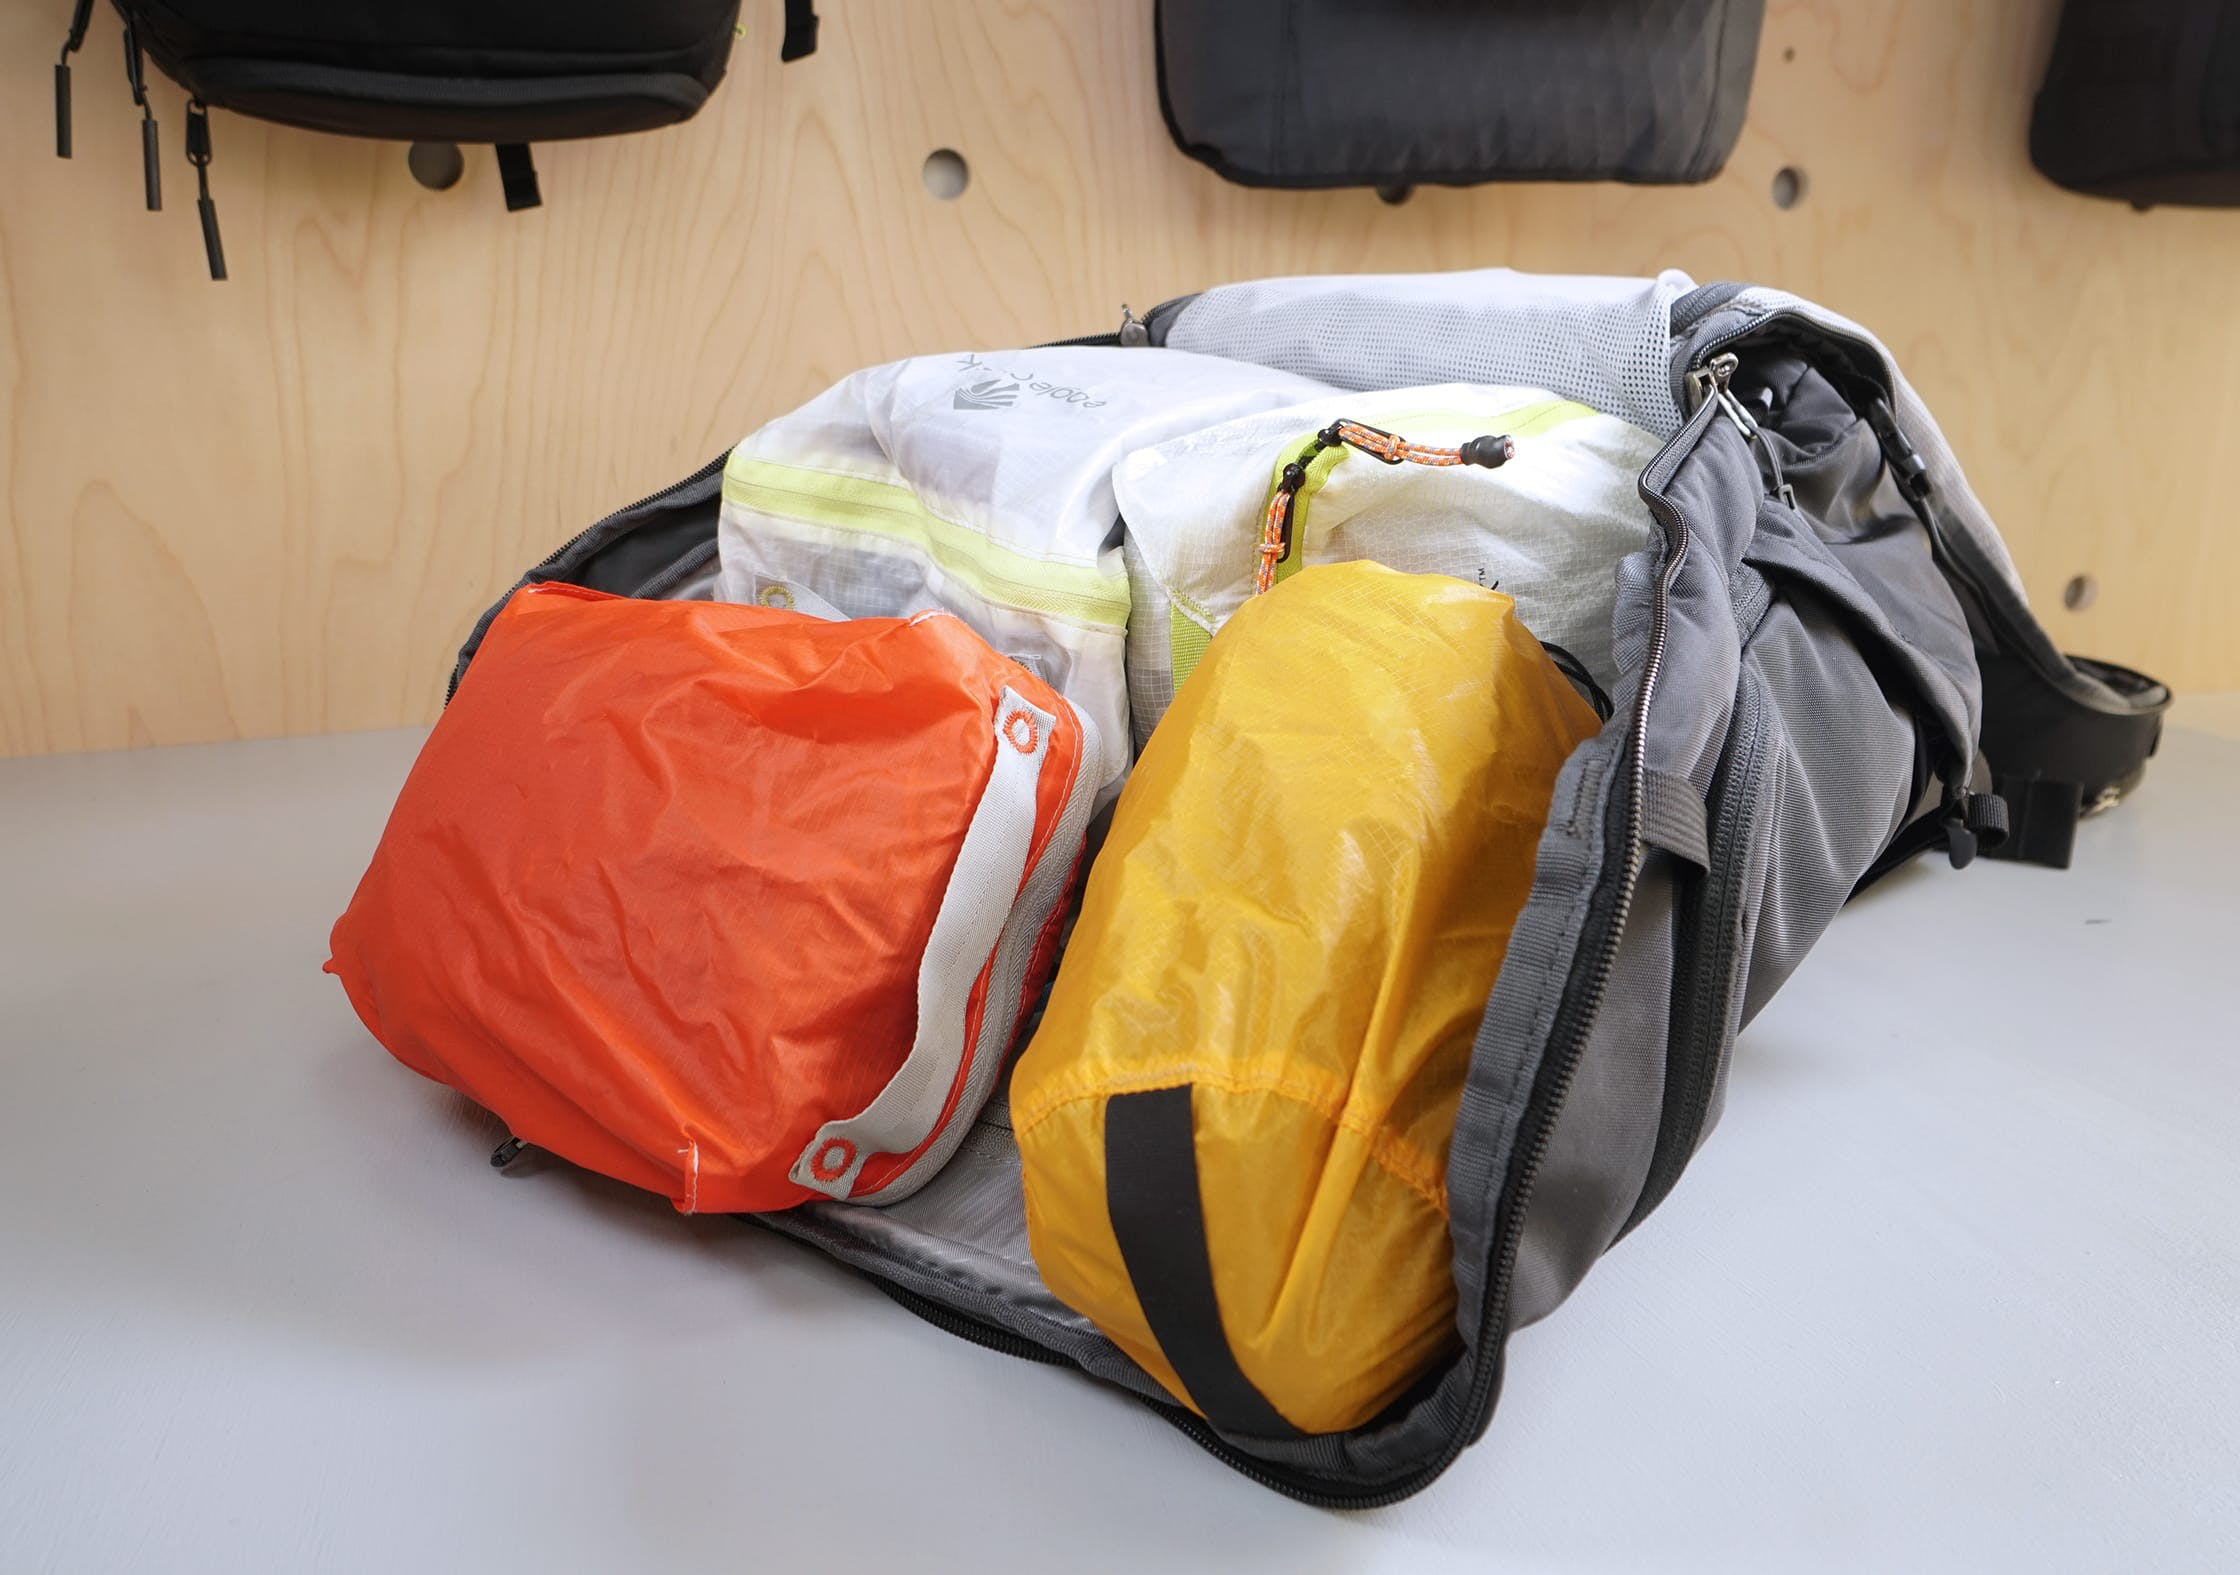 REI Ruckpack 40 Main Compartment With Packing Cubes